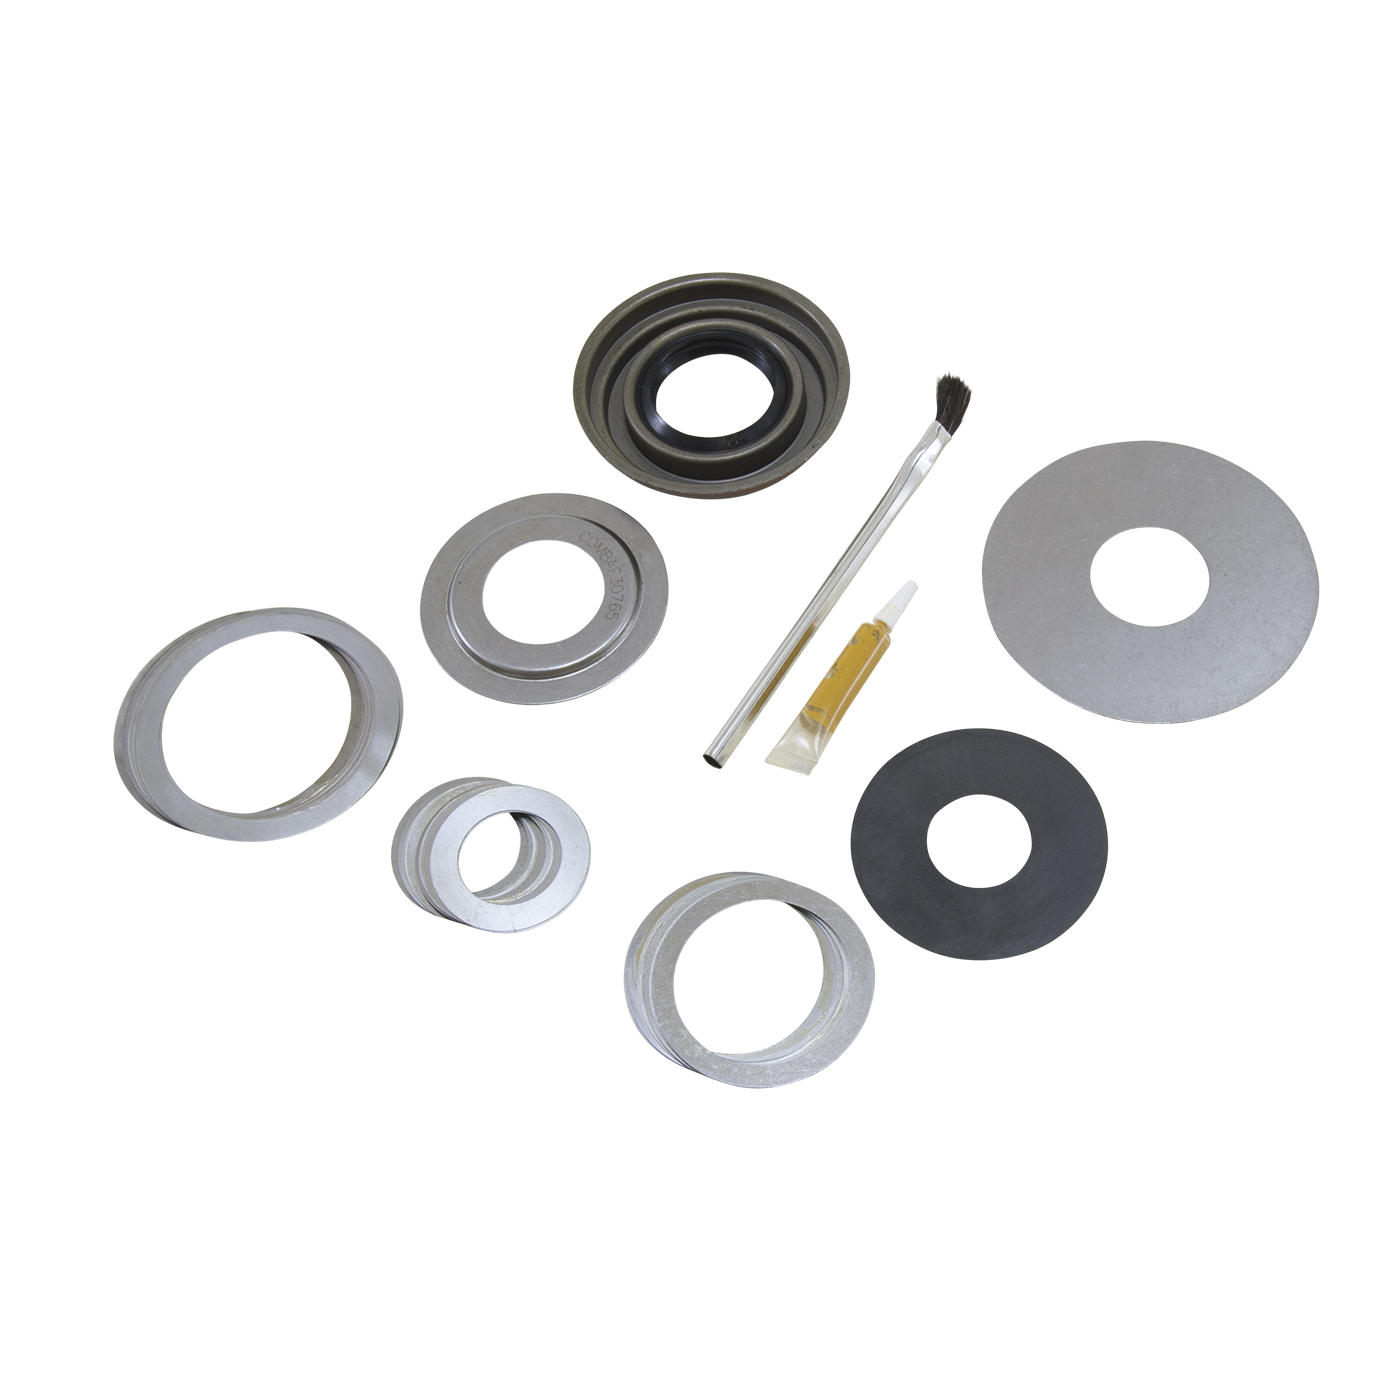 MK D36-VET - Yukon Minor install kit for Dana 36 ICA differential